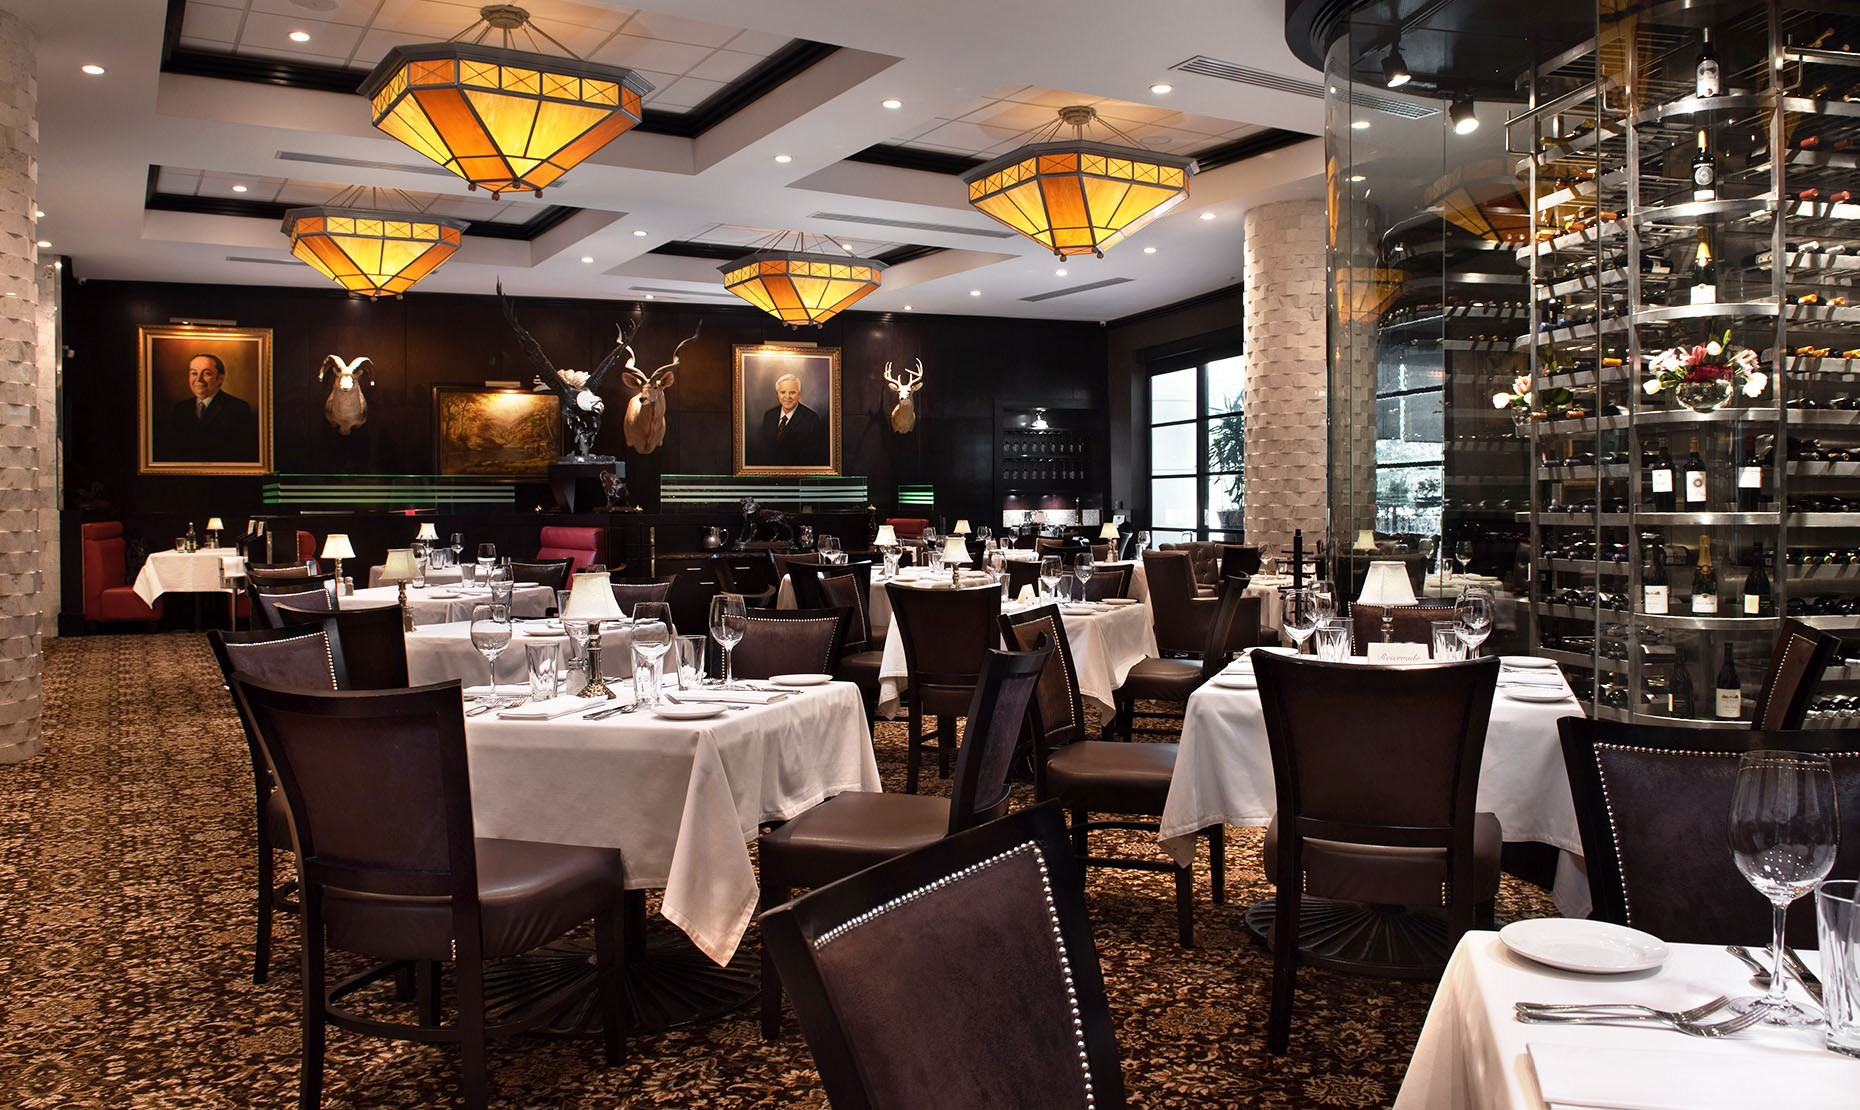 The Capital Grille|Enrique Serran Fotografo Gastronomico|Mexico